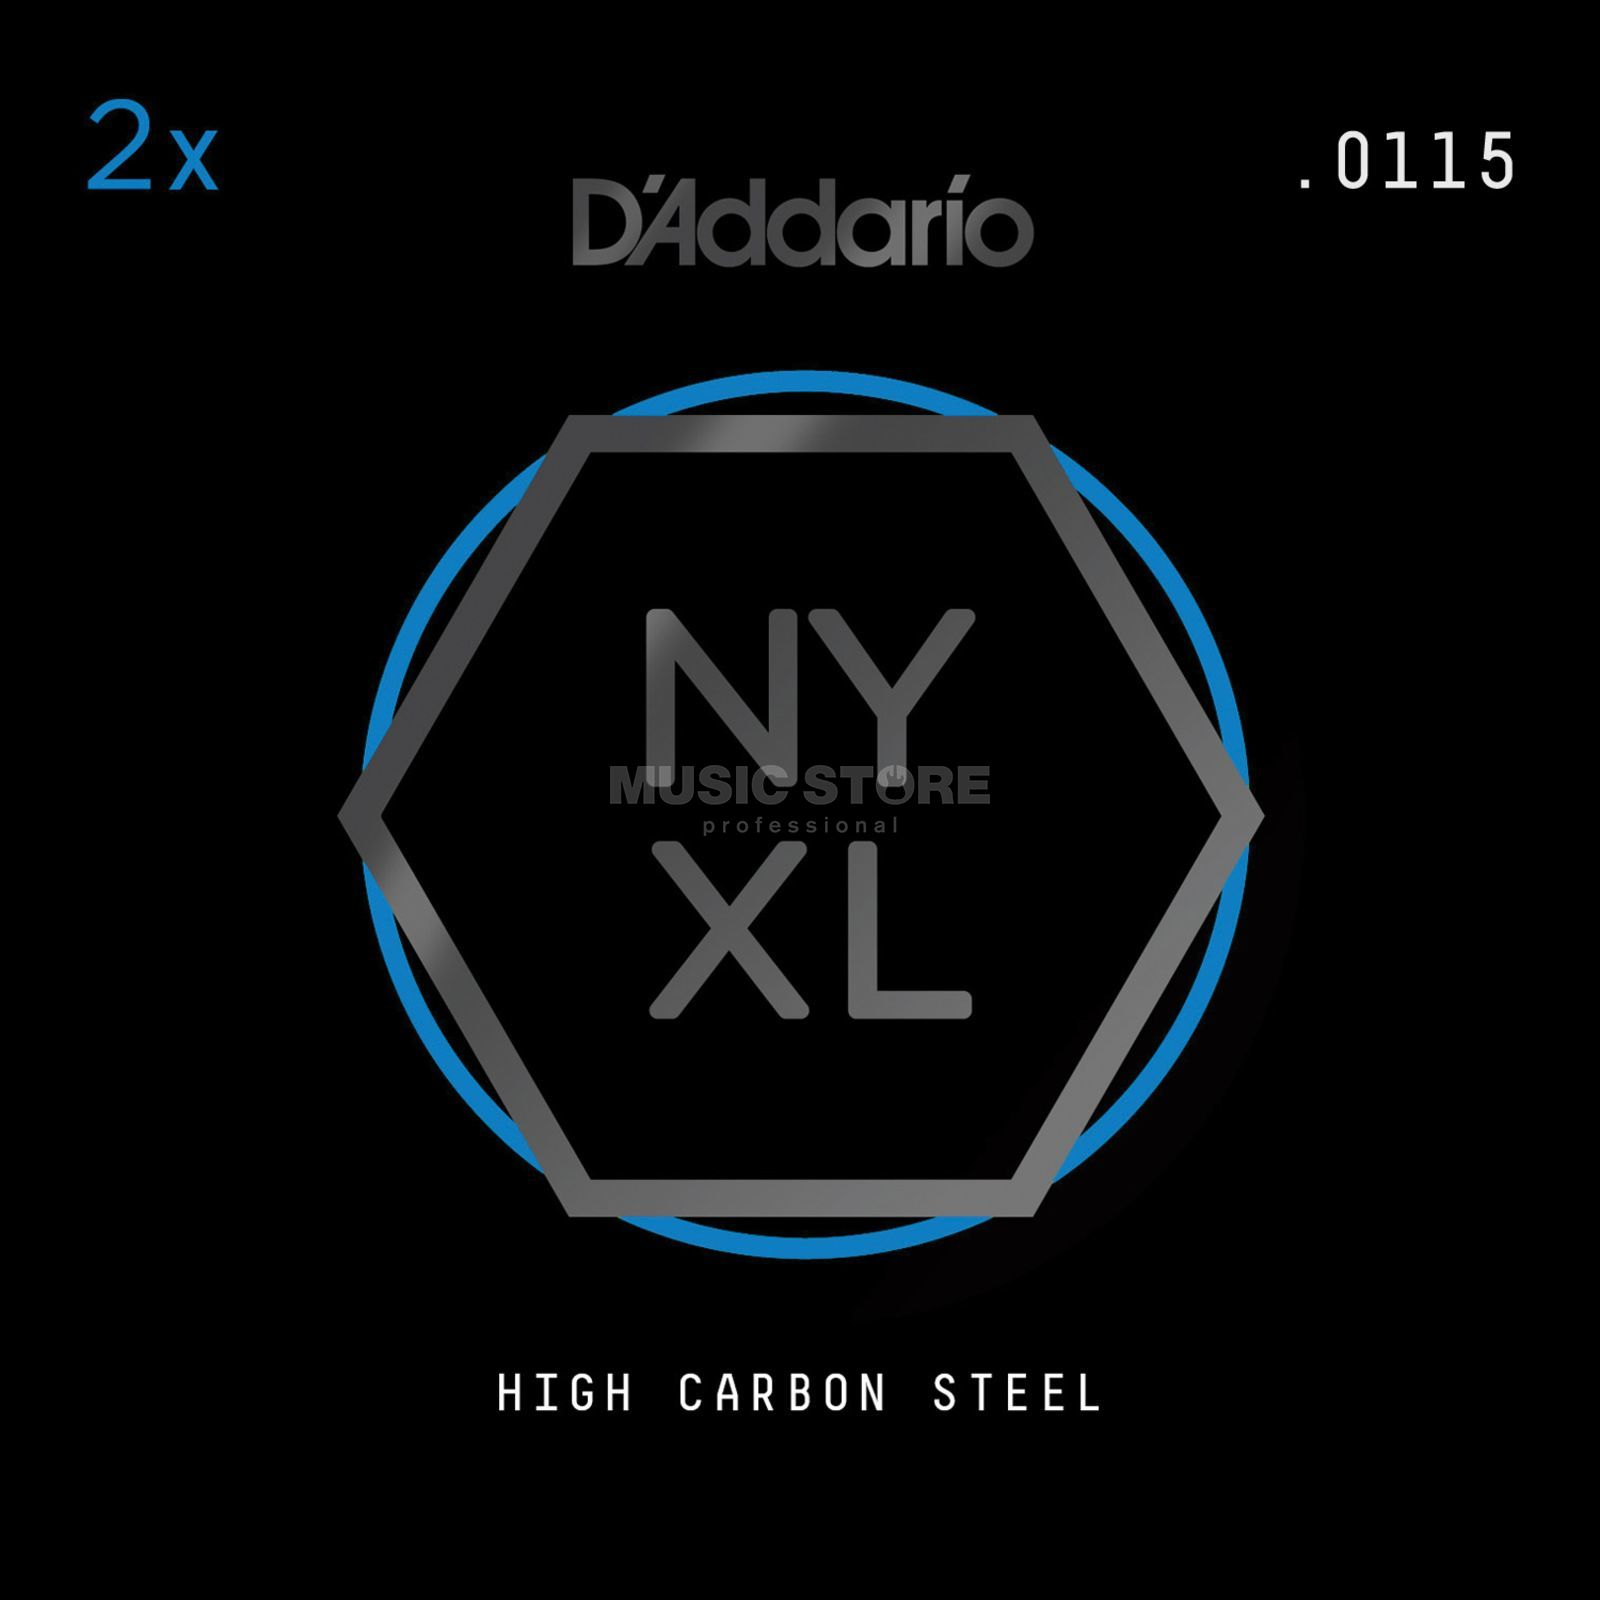 D'Addario NYPL0115 Plain Single String 2-Pack - High Carbon Steel Product Image